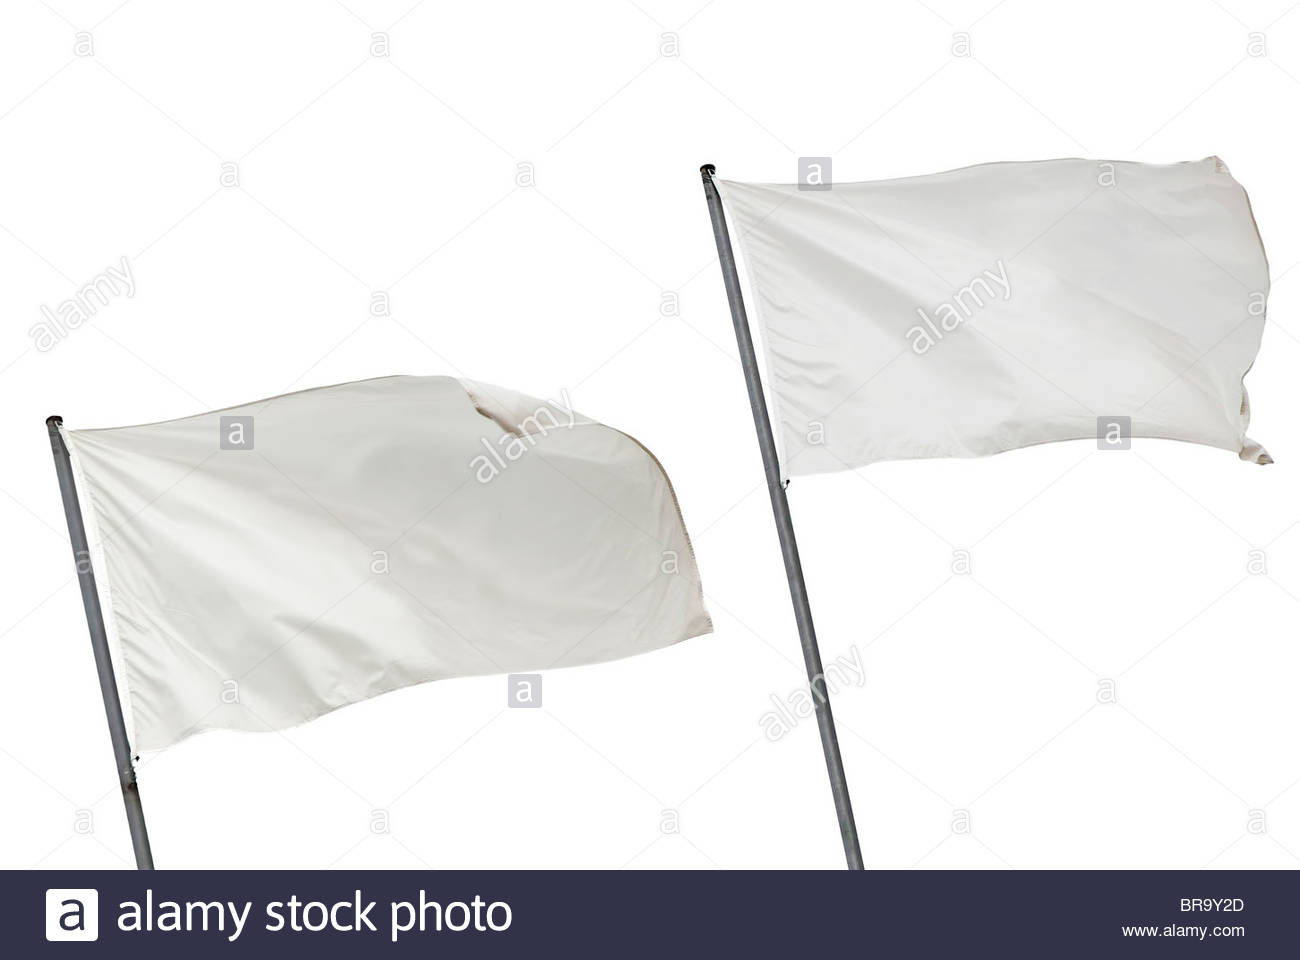 Two white flags waving on the wind. Isolated over white. - Stock Image